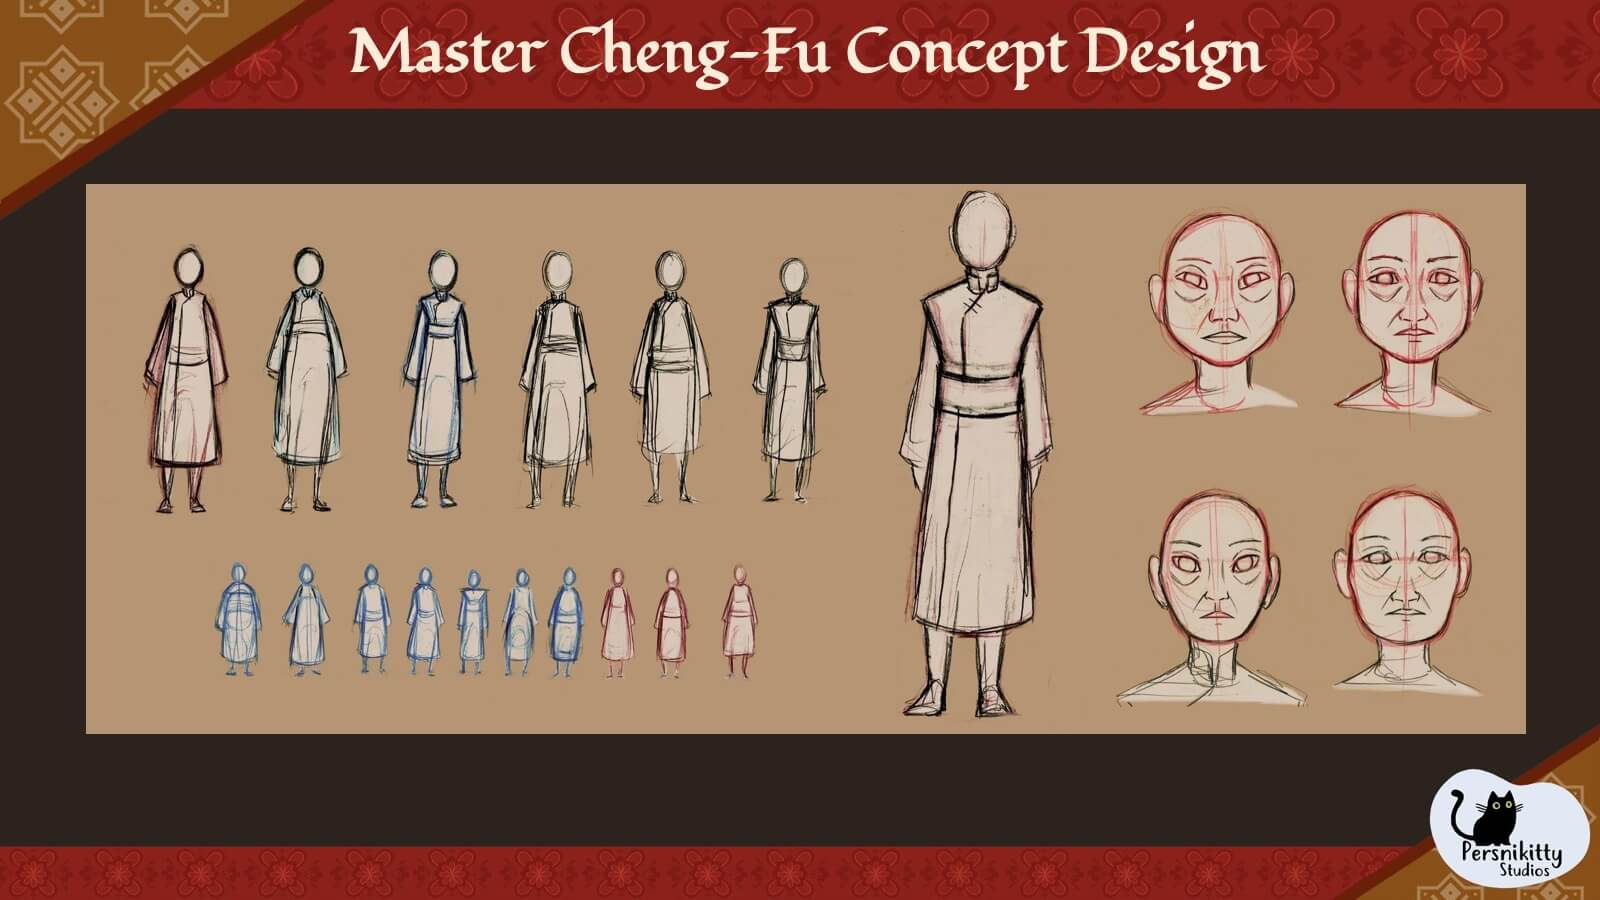 A concept design slide for the character Master Cheng-Fu.